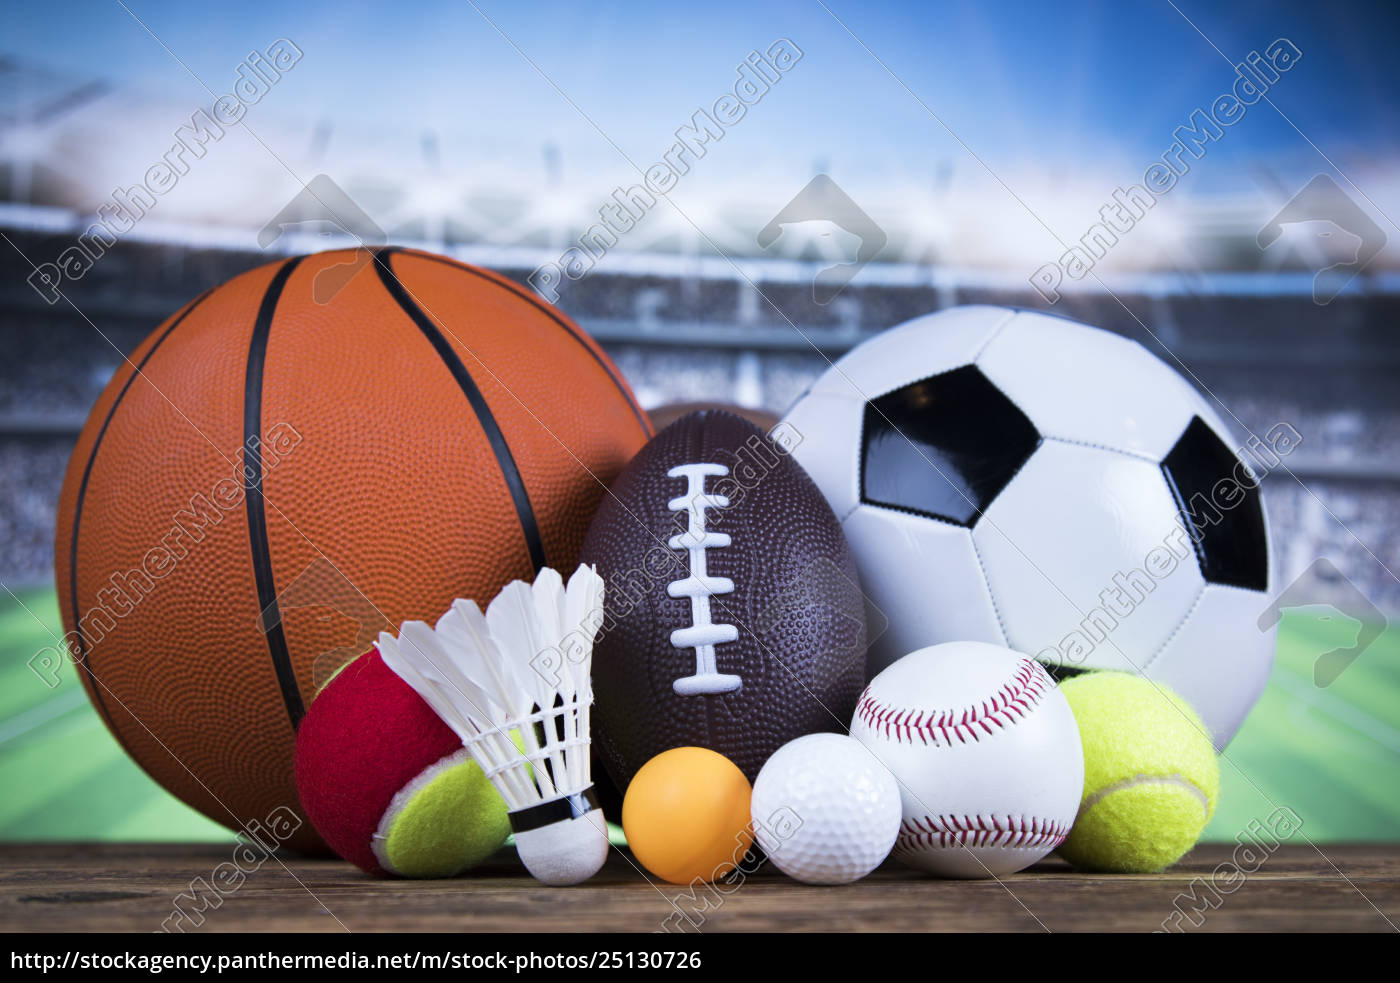 group, of, sports, equipment - 25130726